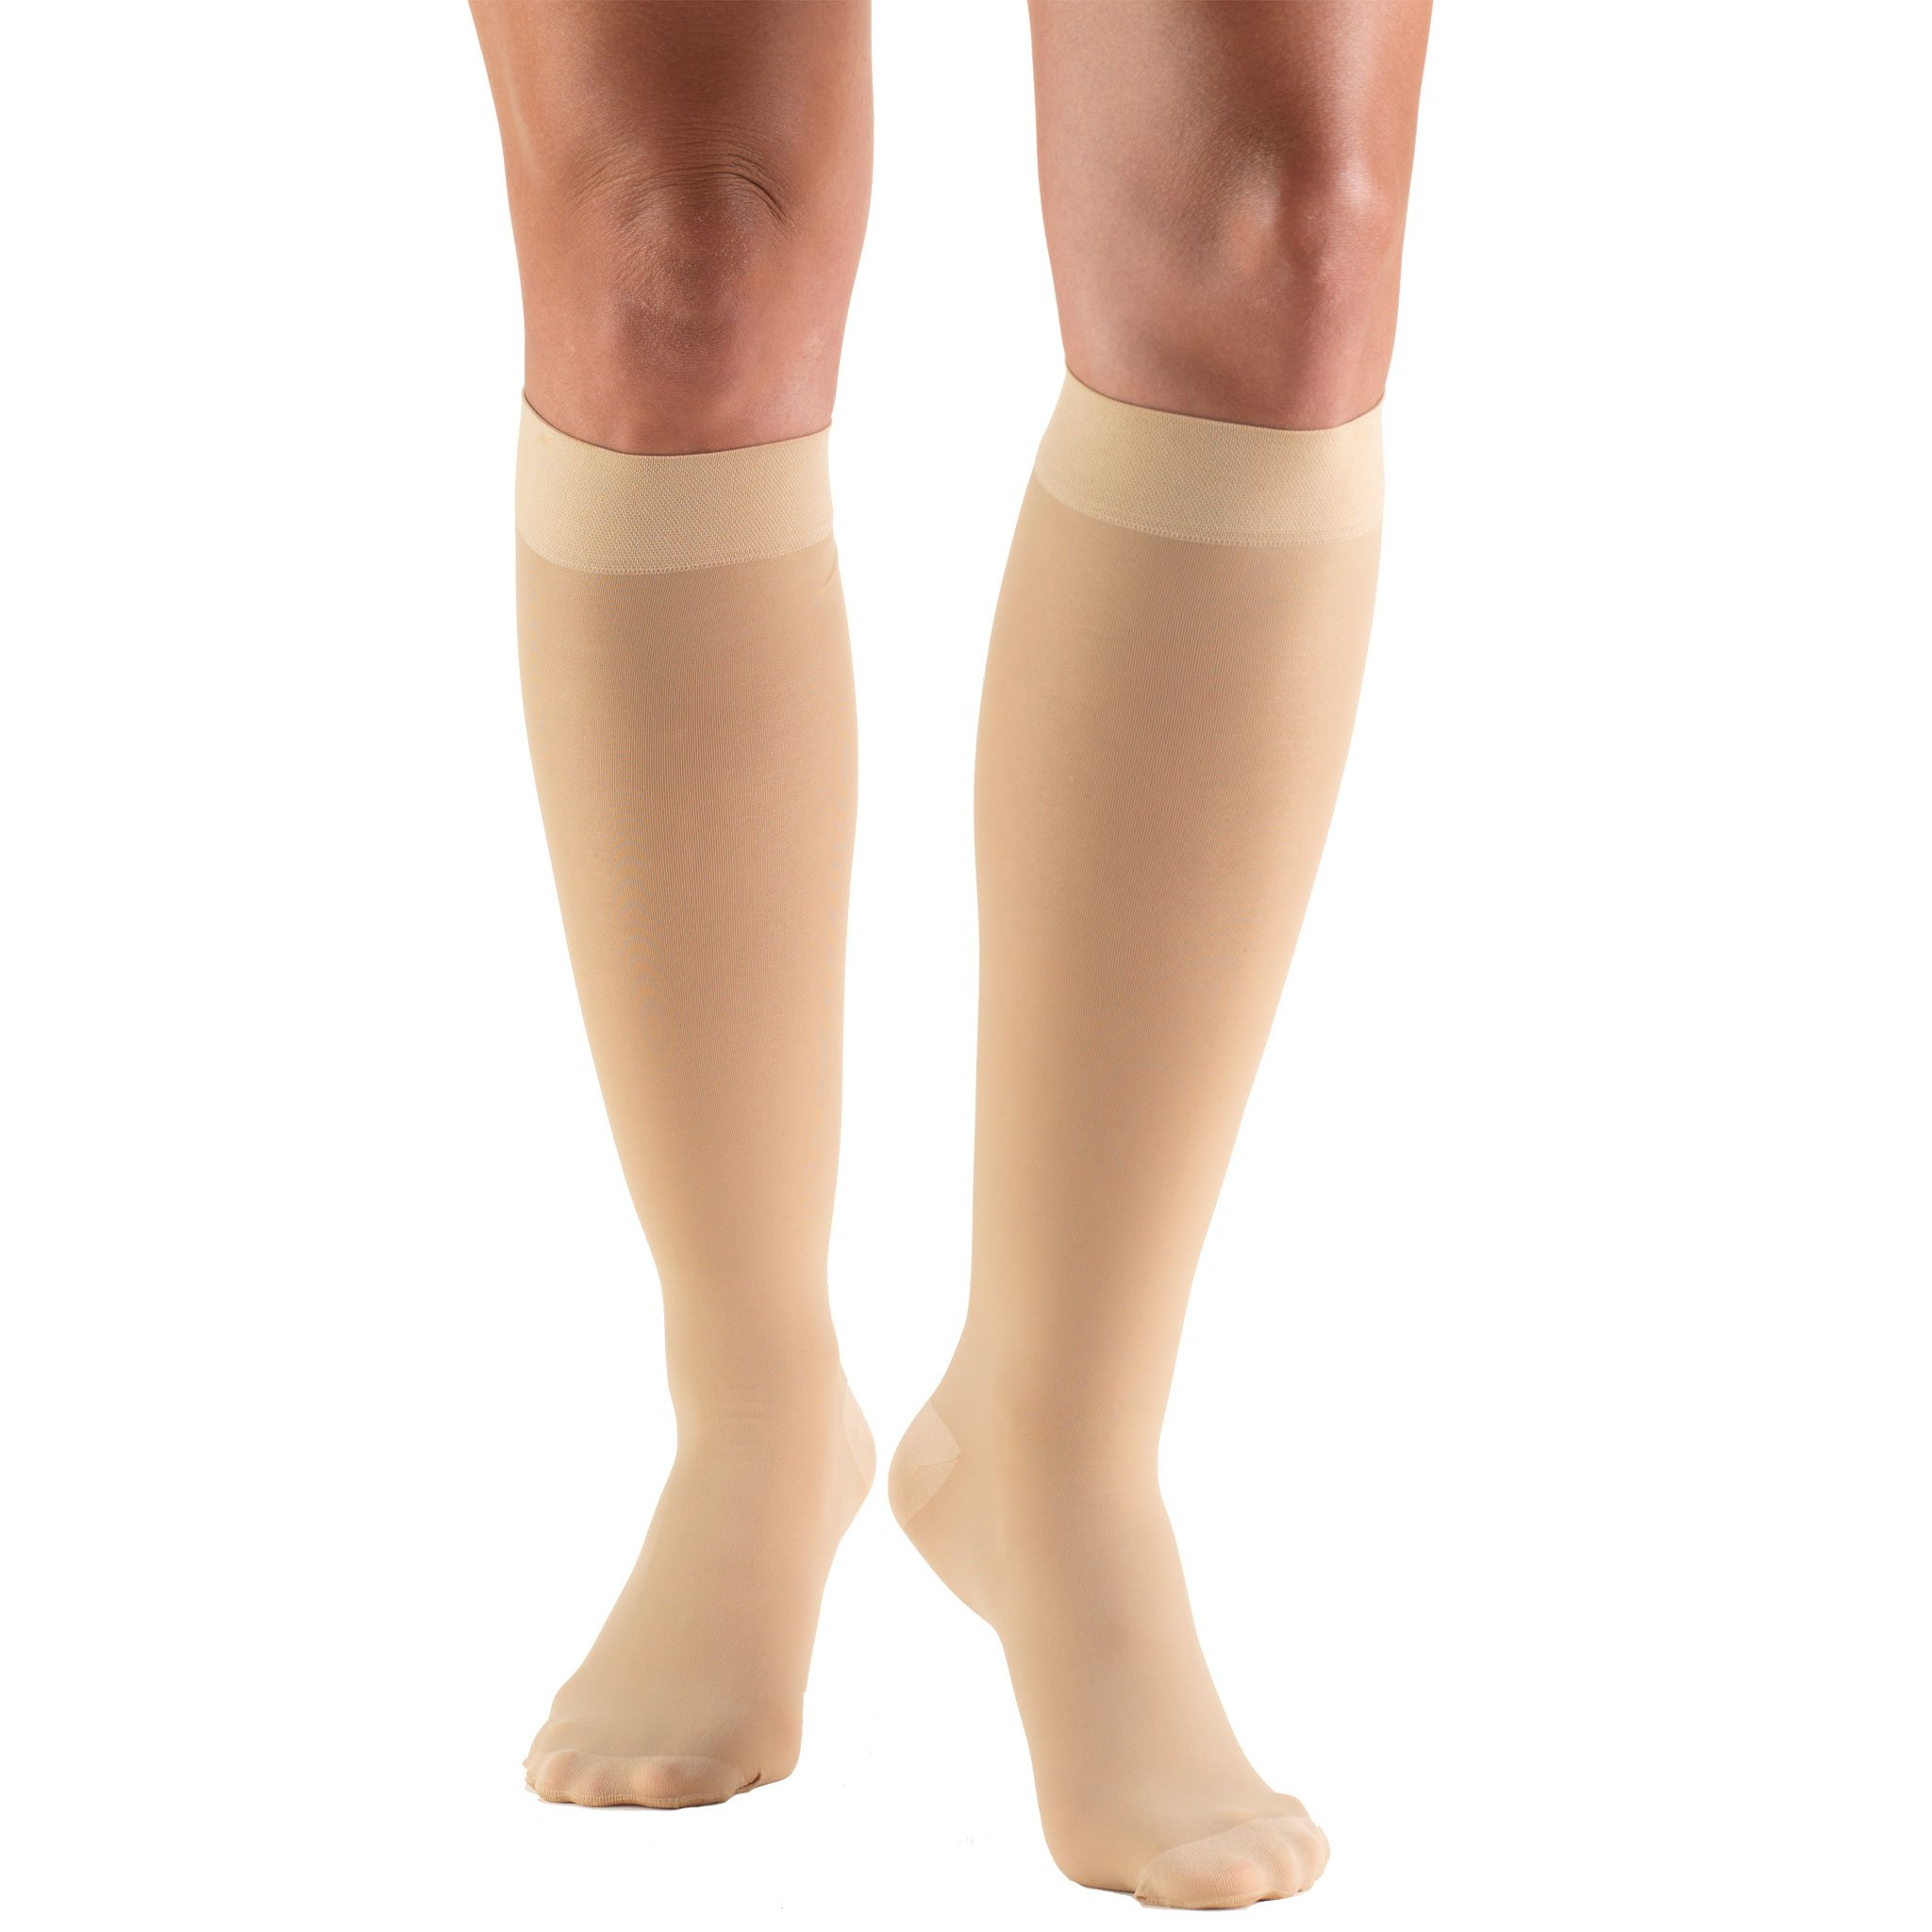 Truform Women's 20-30 mmHg Sheer Knee High Compression Stockings, Beige, X-Large